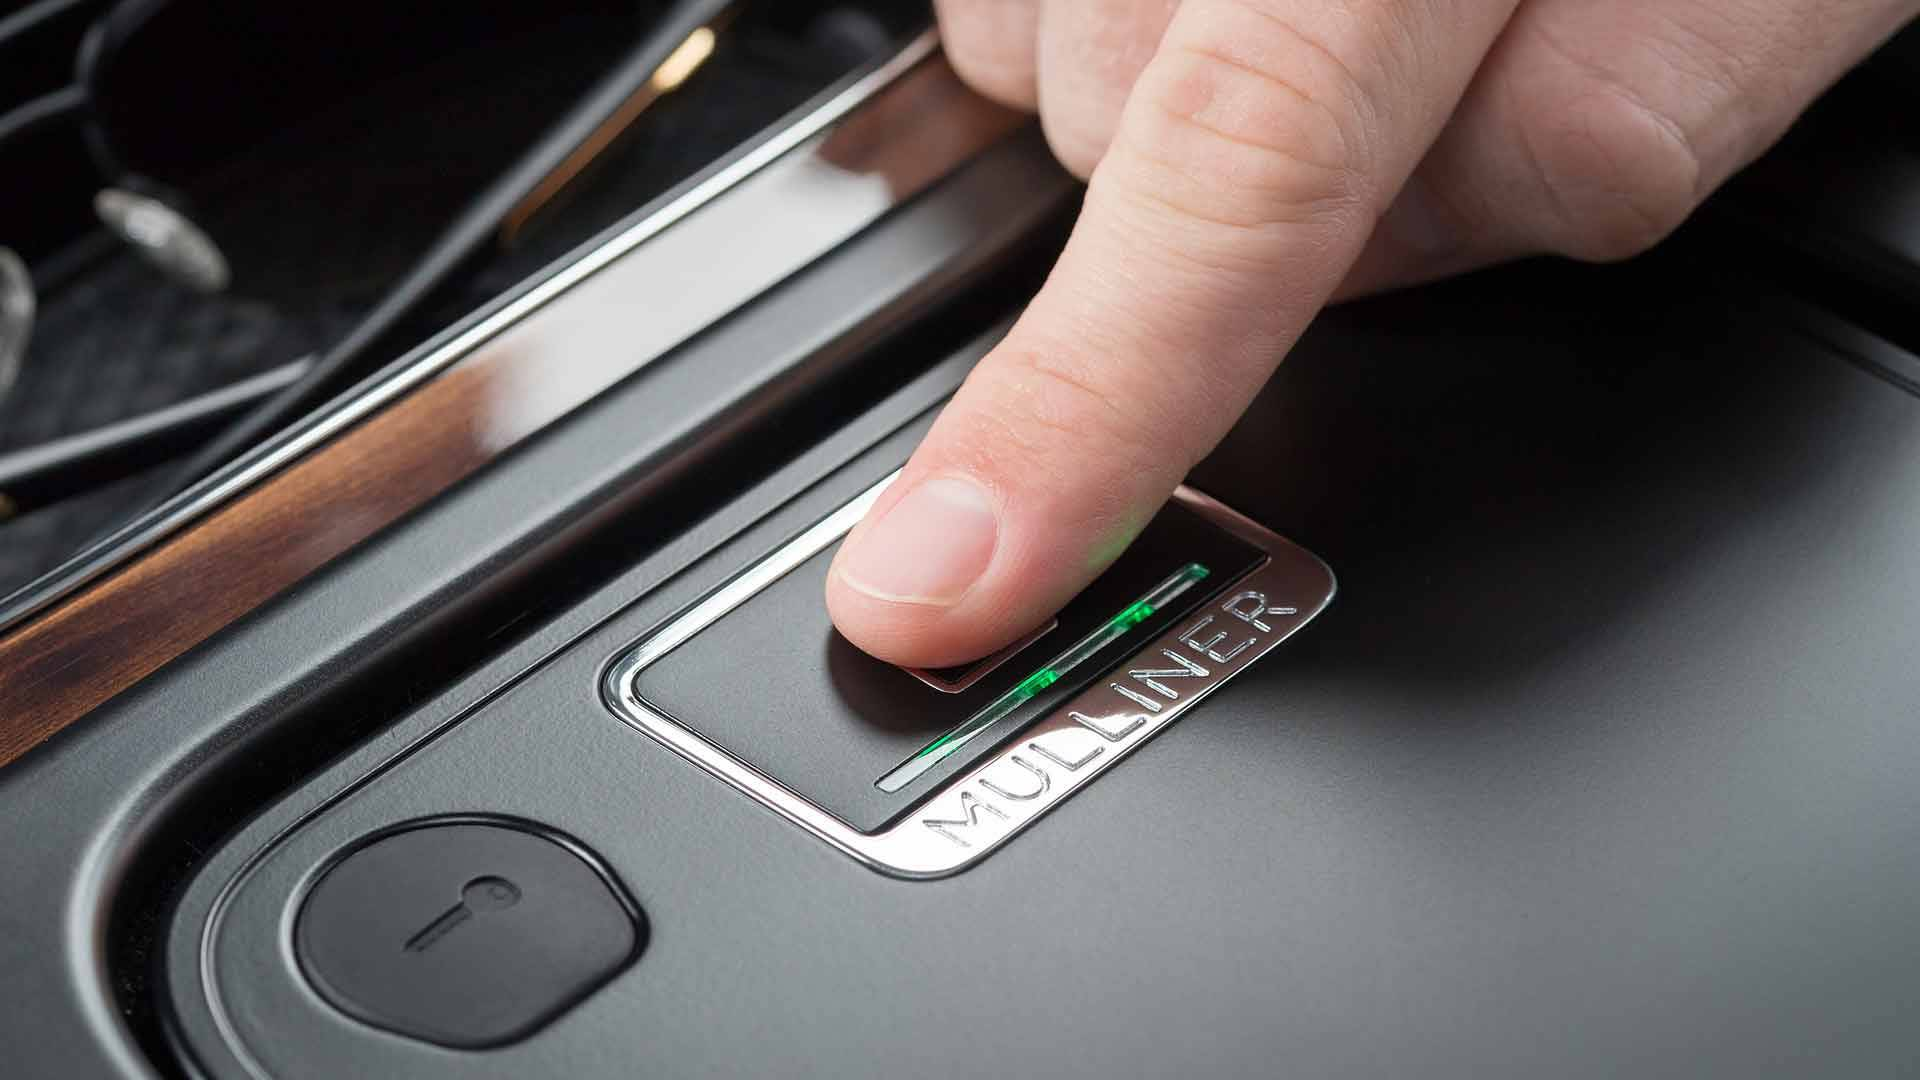 bentley-bentayga-fingerprint-storage (4)